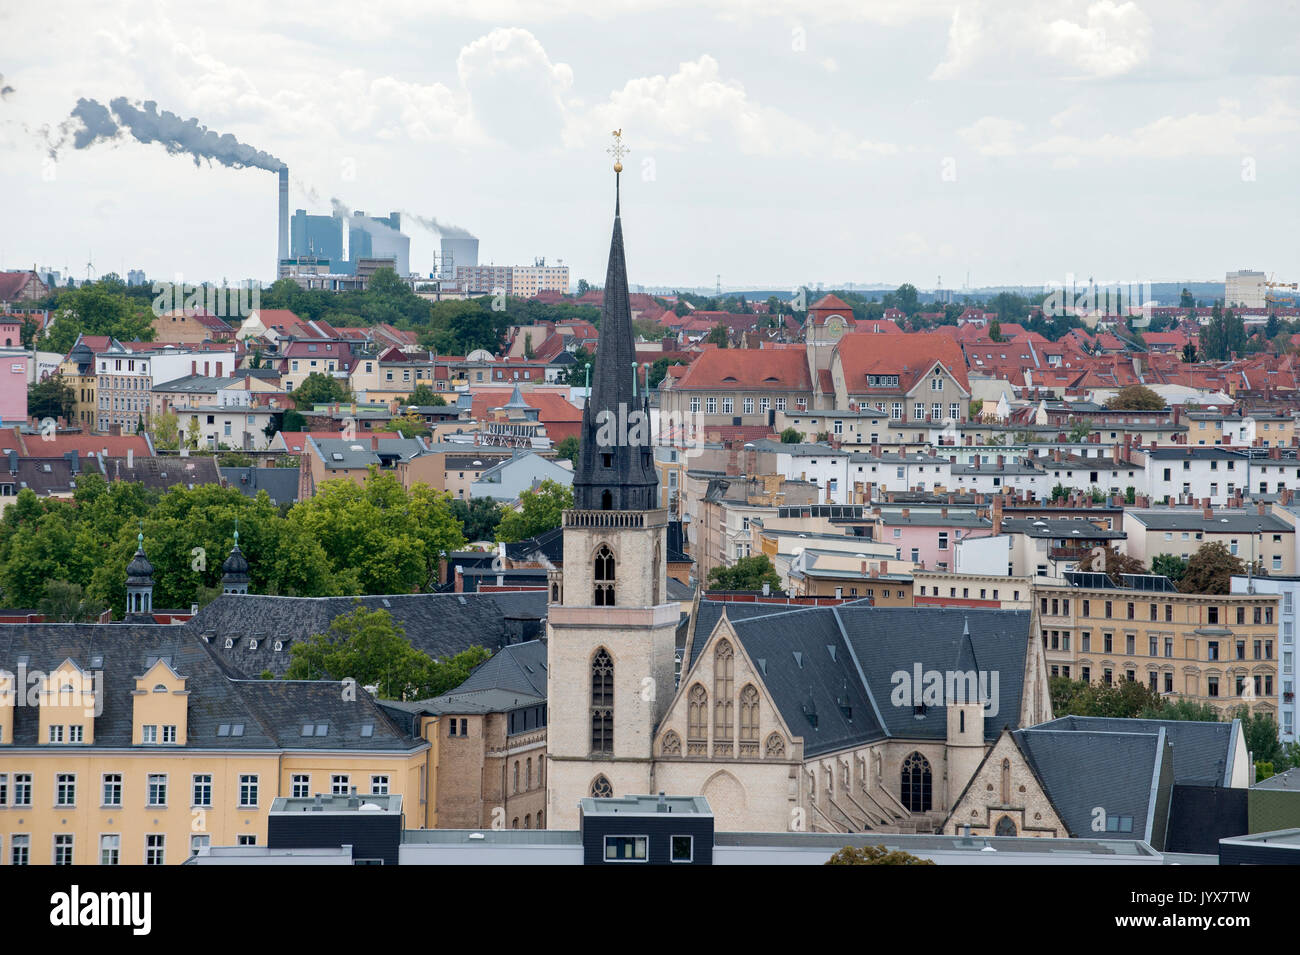 The KölnTurm as part of the Urban regeneration at Media Park in Neustadt-Nord, Cologne, Germany. - Stock Image